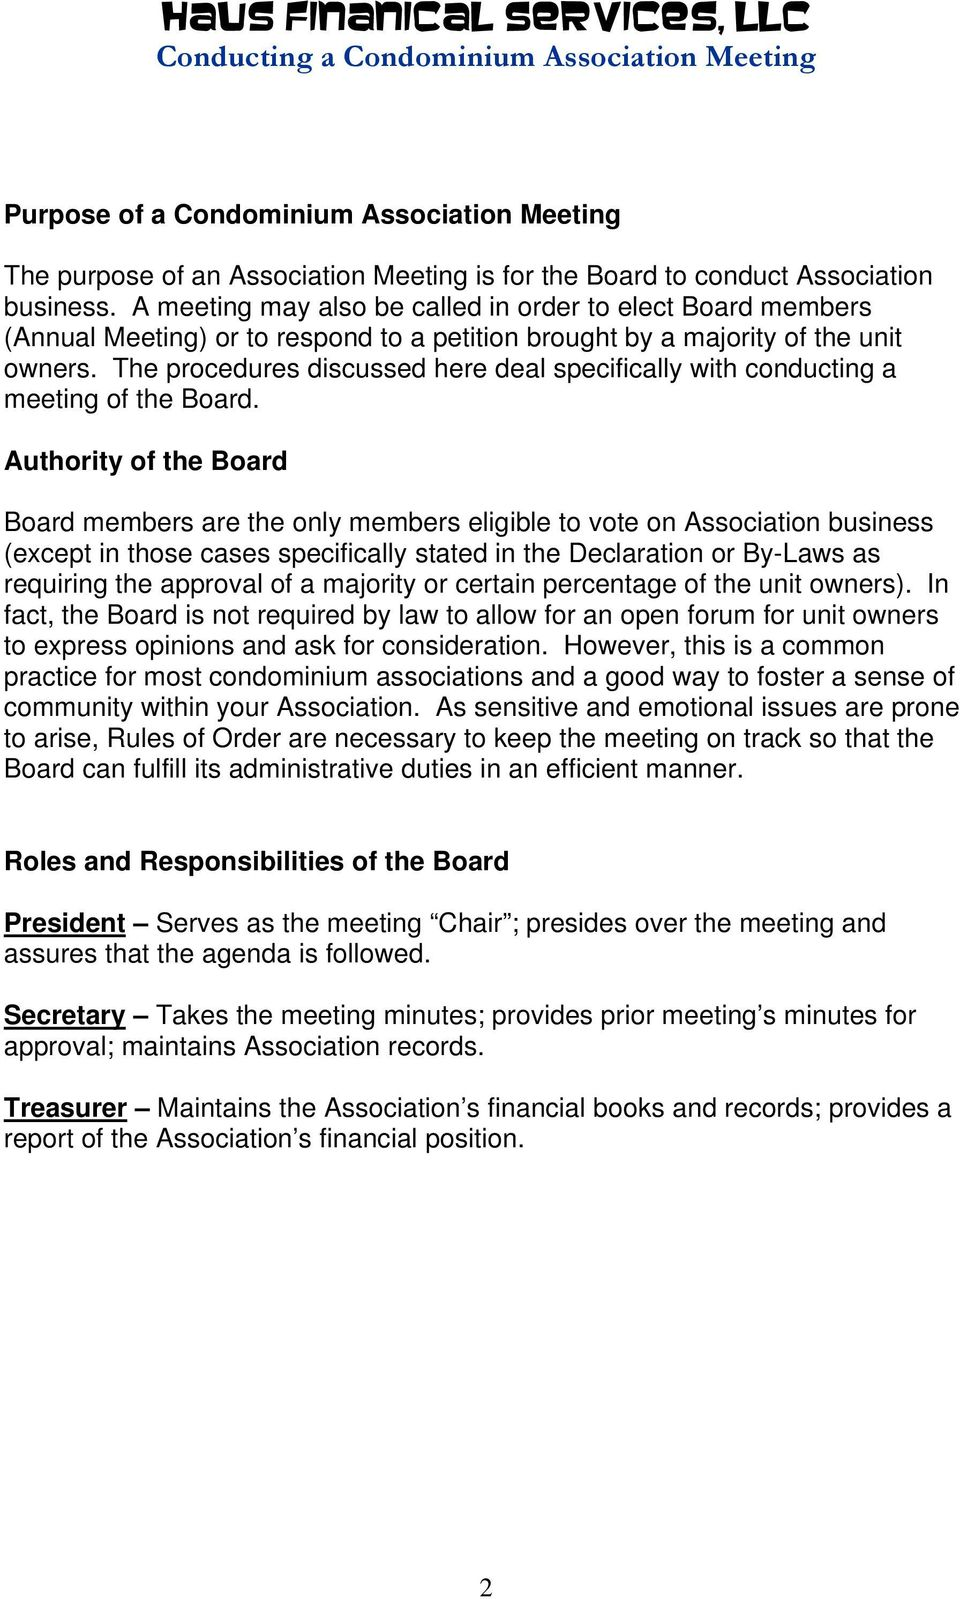 The procedures discussed here deal specifically with conducting a meeting of the Board.